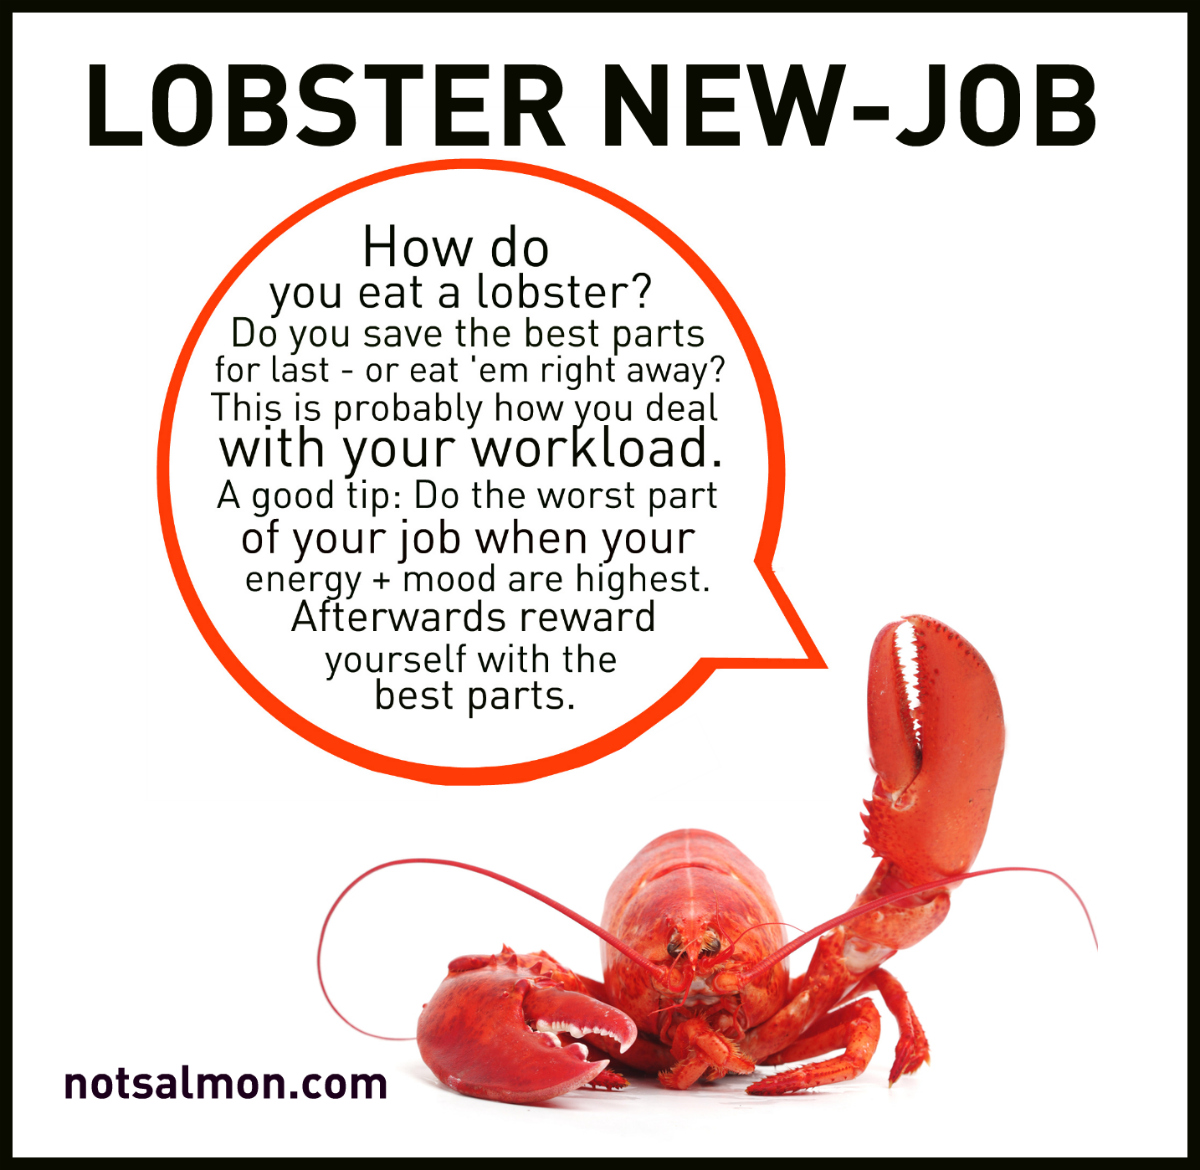 lobster new job a career tip inspired by a lobster karen lobster new job a career tip inspired by a lobster